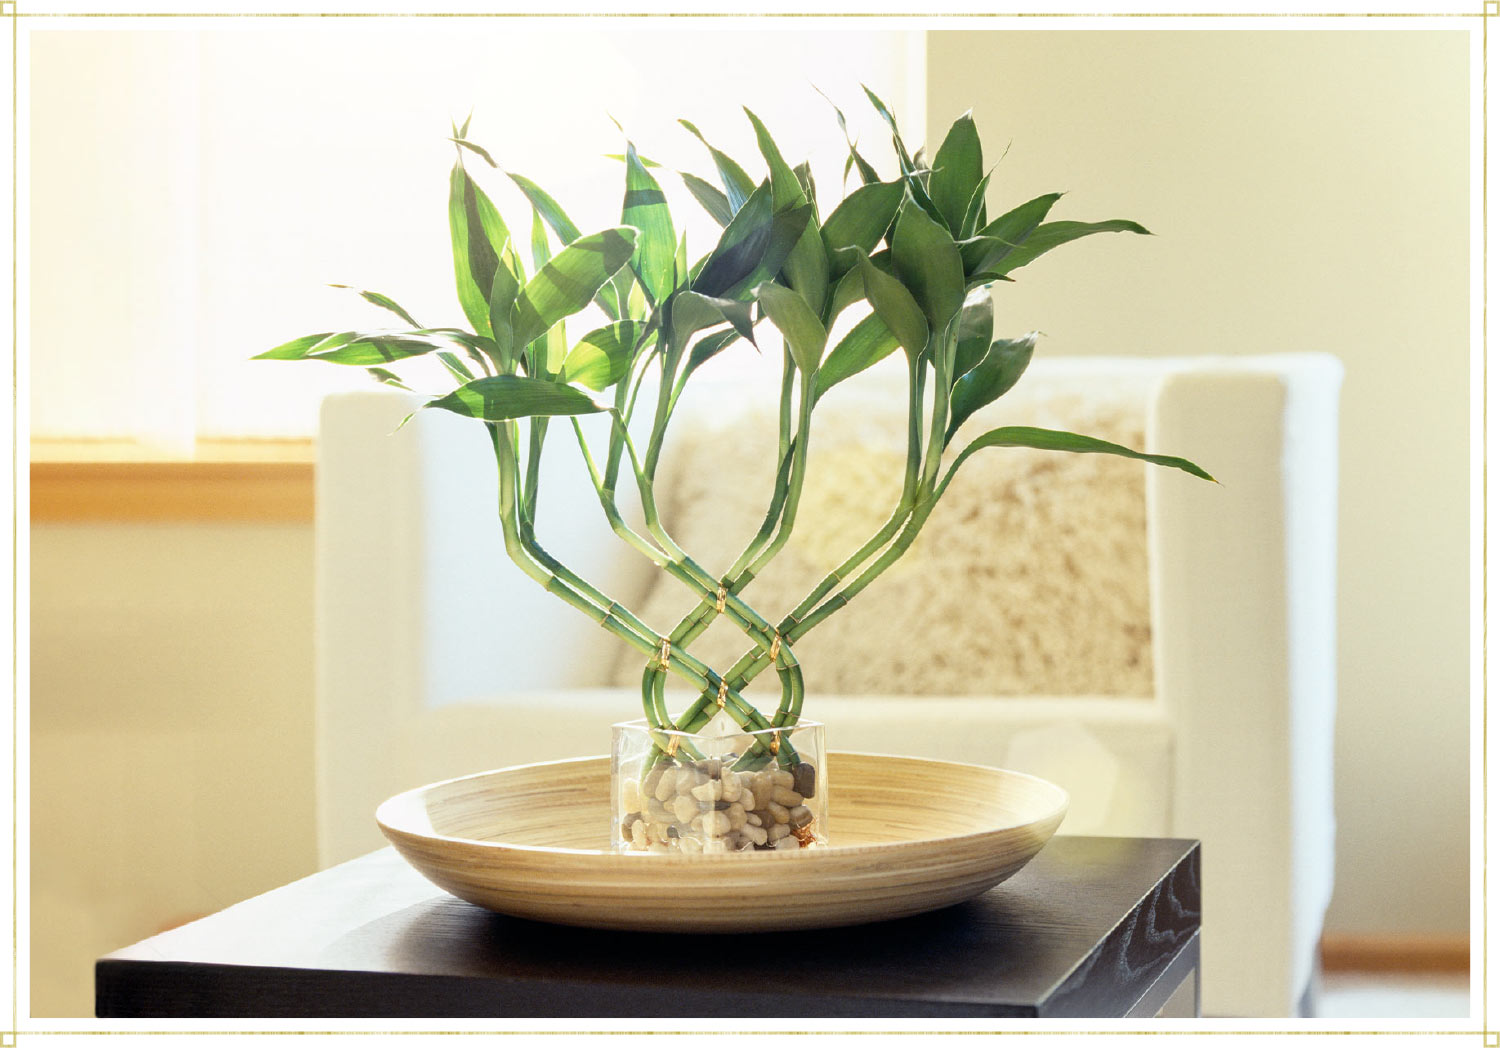 twisted bamboo in a glass jar on a living room coffee table